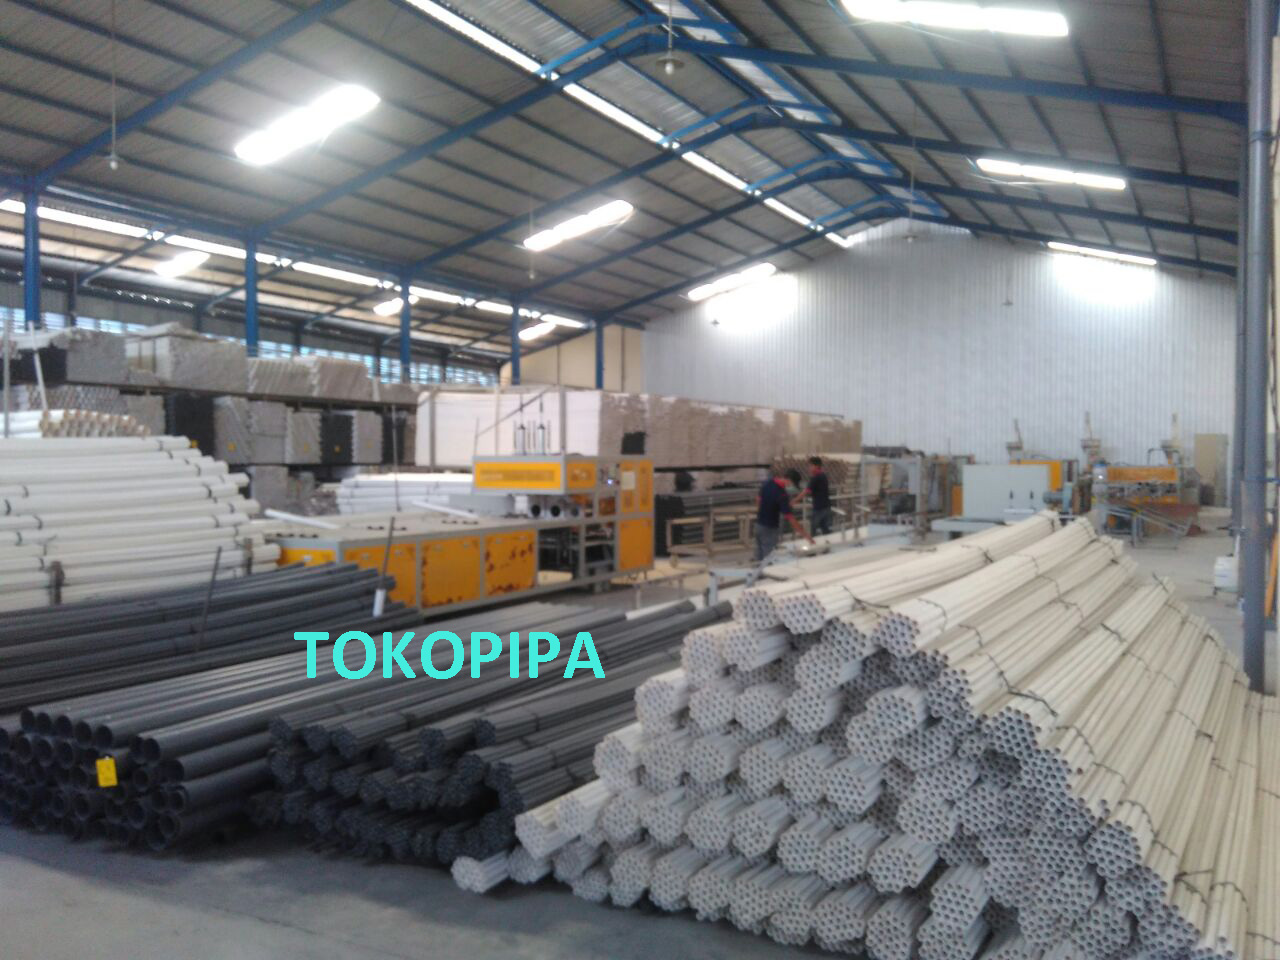 Pipa Pvc Trilliun – 085360005784(whatsapp/call)			No ratings yet.